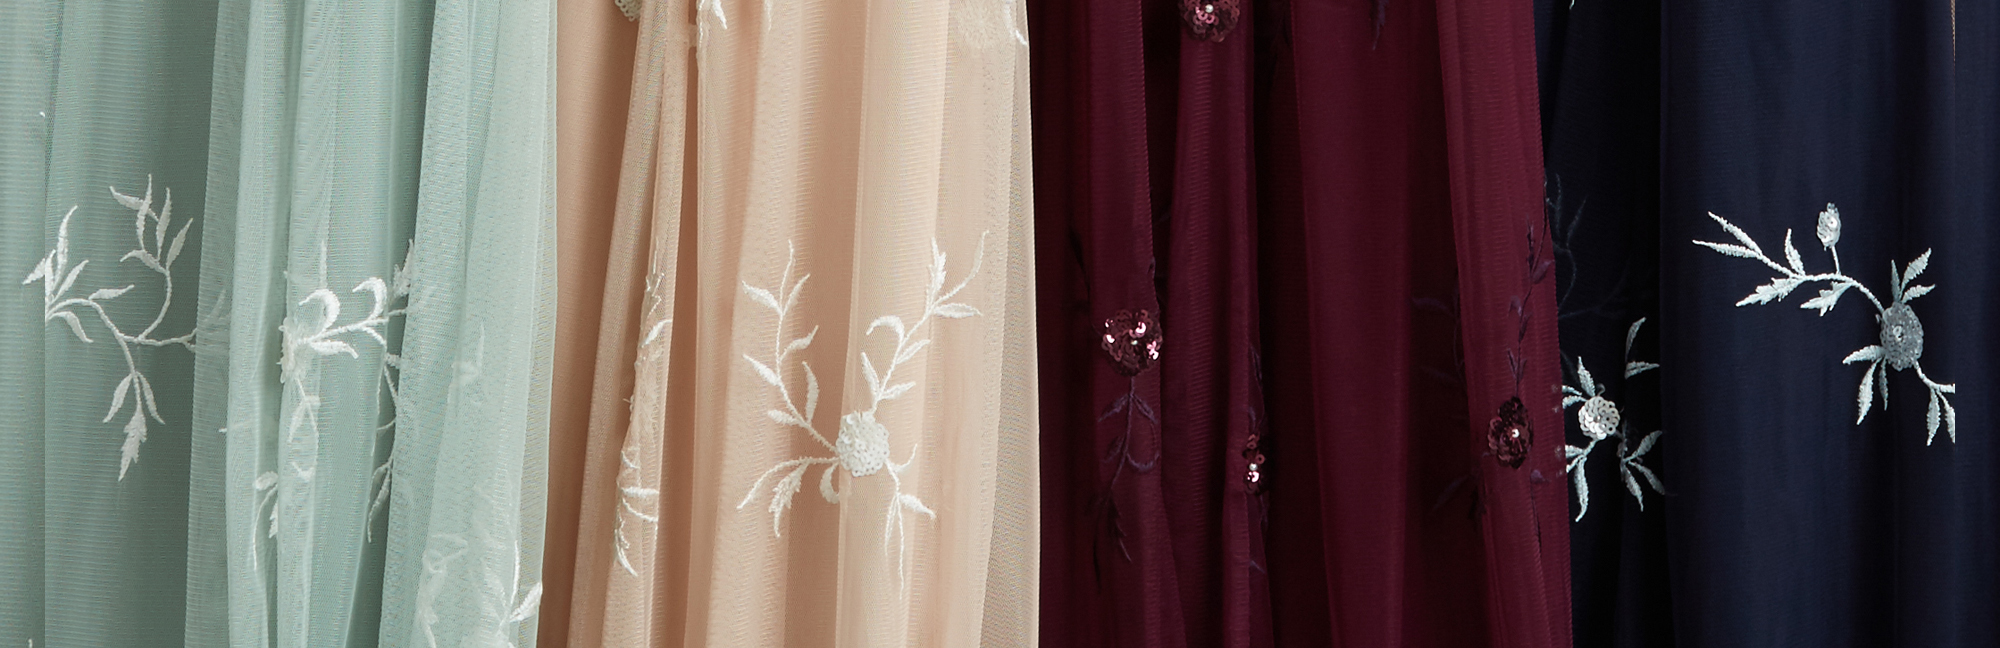 Available in all bodices paired with the Georgette Skirt Silhouette in Green with Ivory, Champagne with Ivory, Burgundy with Purple or Navy with Silver and Ice Blue embroidery.